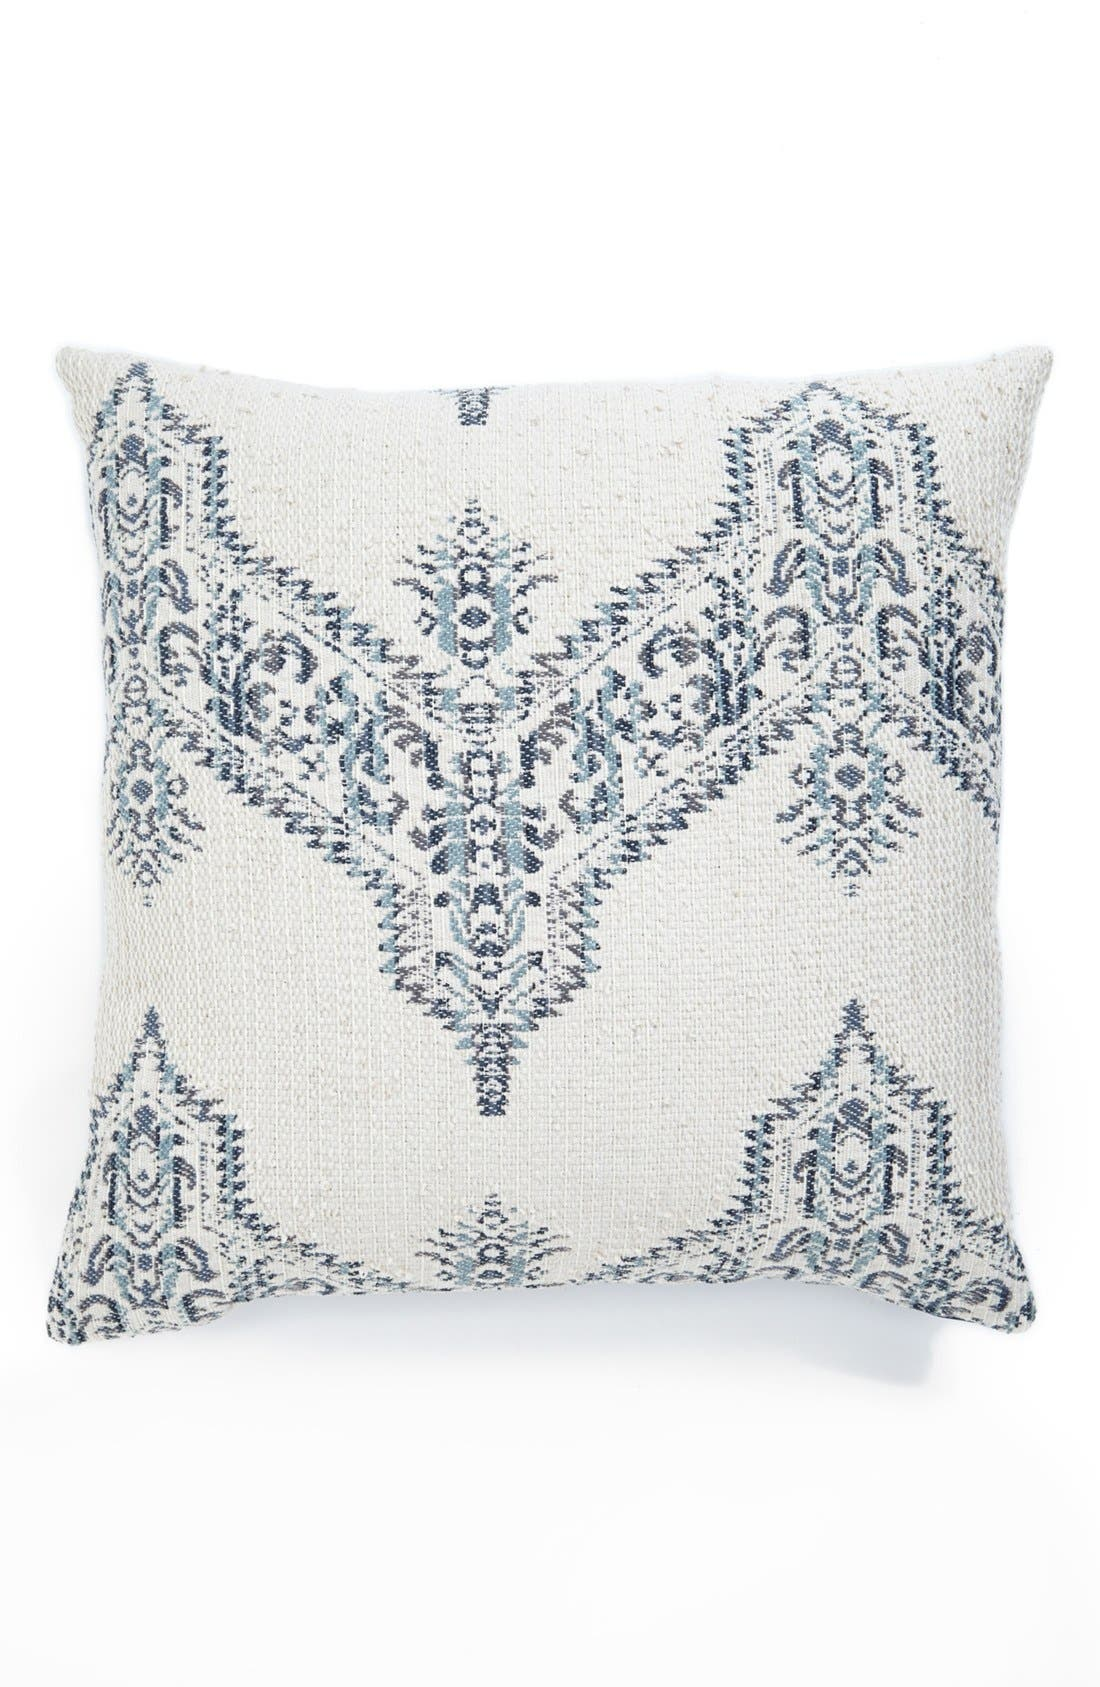 Alternate Image 1 Selected - Spencer N. Home 'Aztec Blanket' Pillow